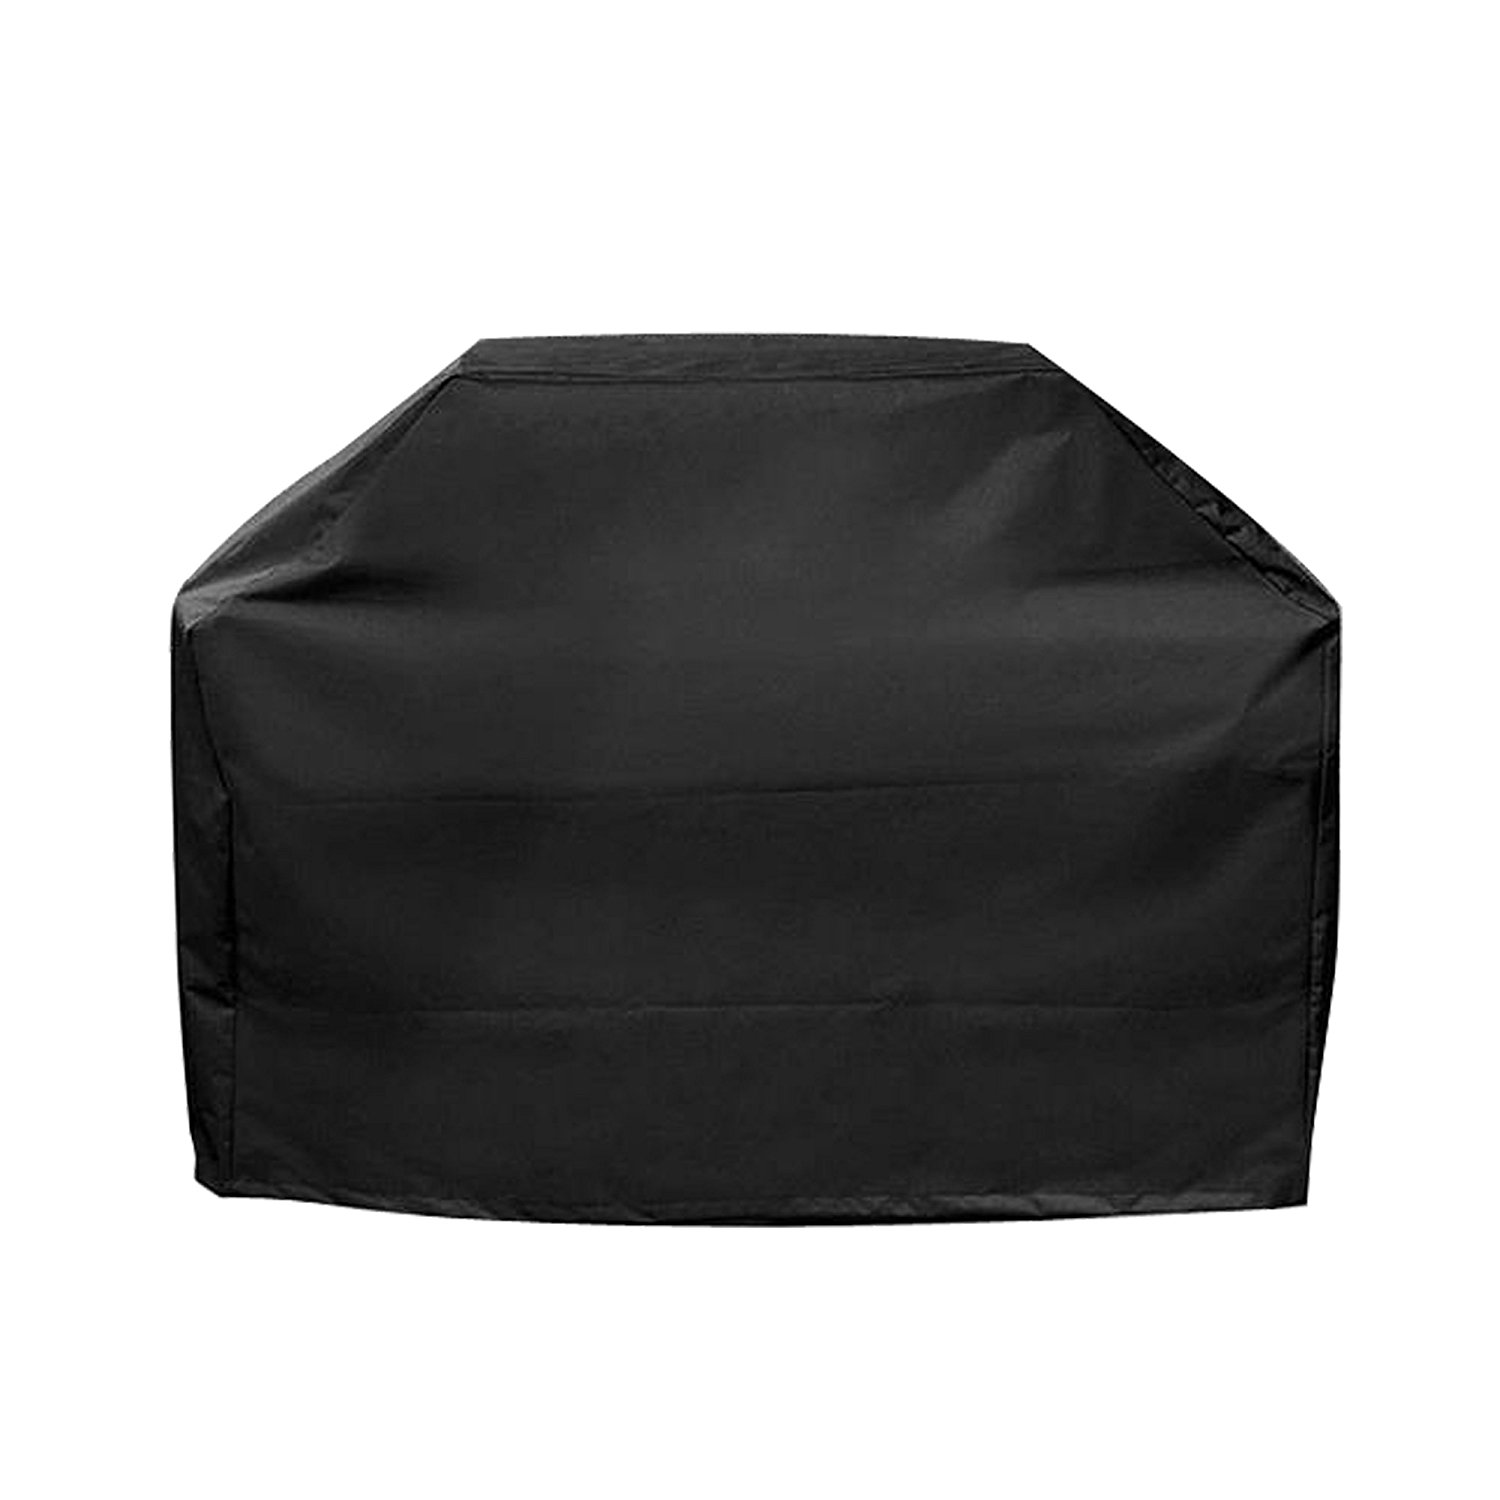 "BBQ Grill Cover, Waterproof Lightweight Gas Grill Cover for Weber, Brinkmann, Char Broil, Holland and Jenn Air (57"" x 24"" x 46"")"